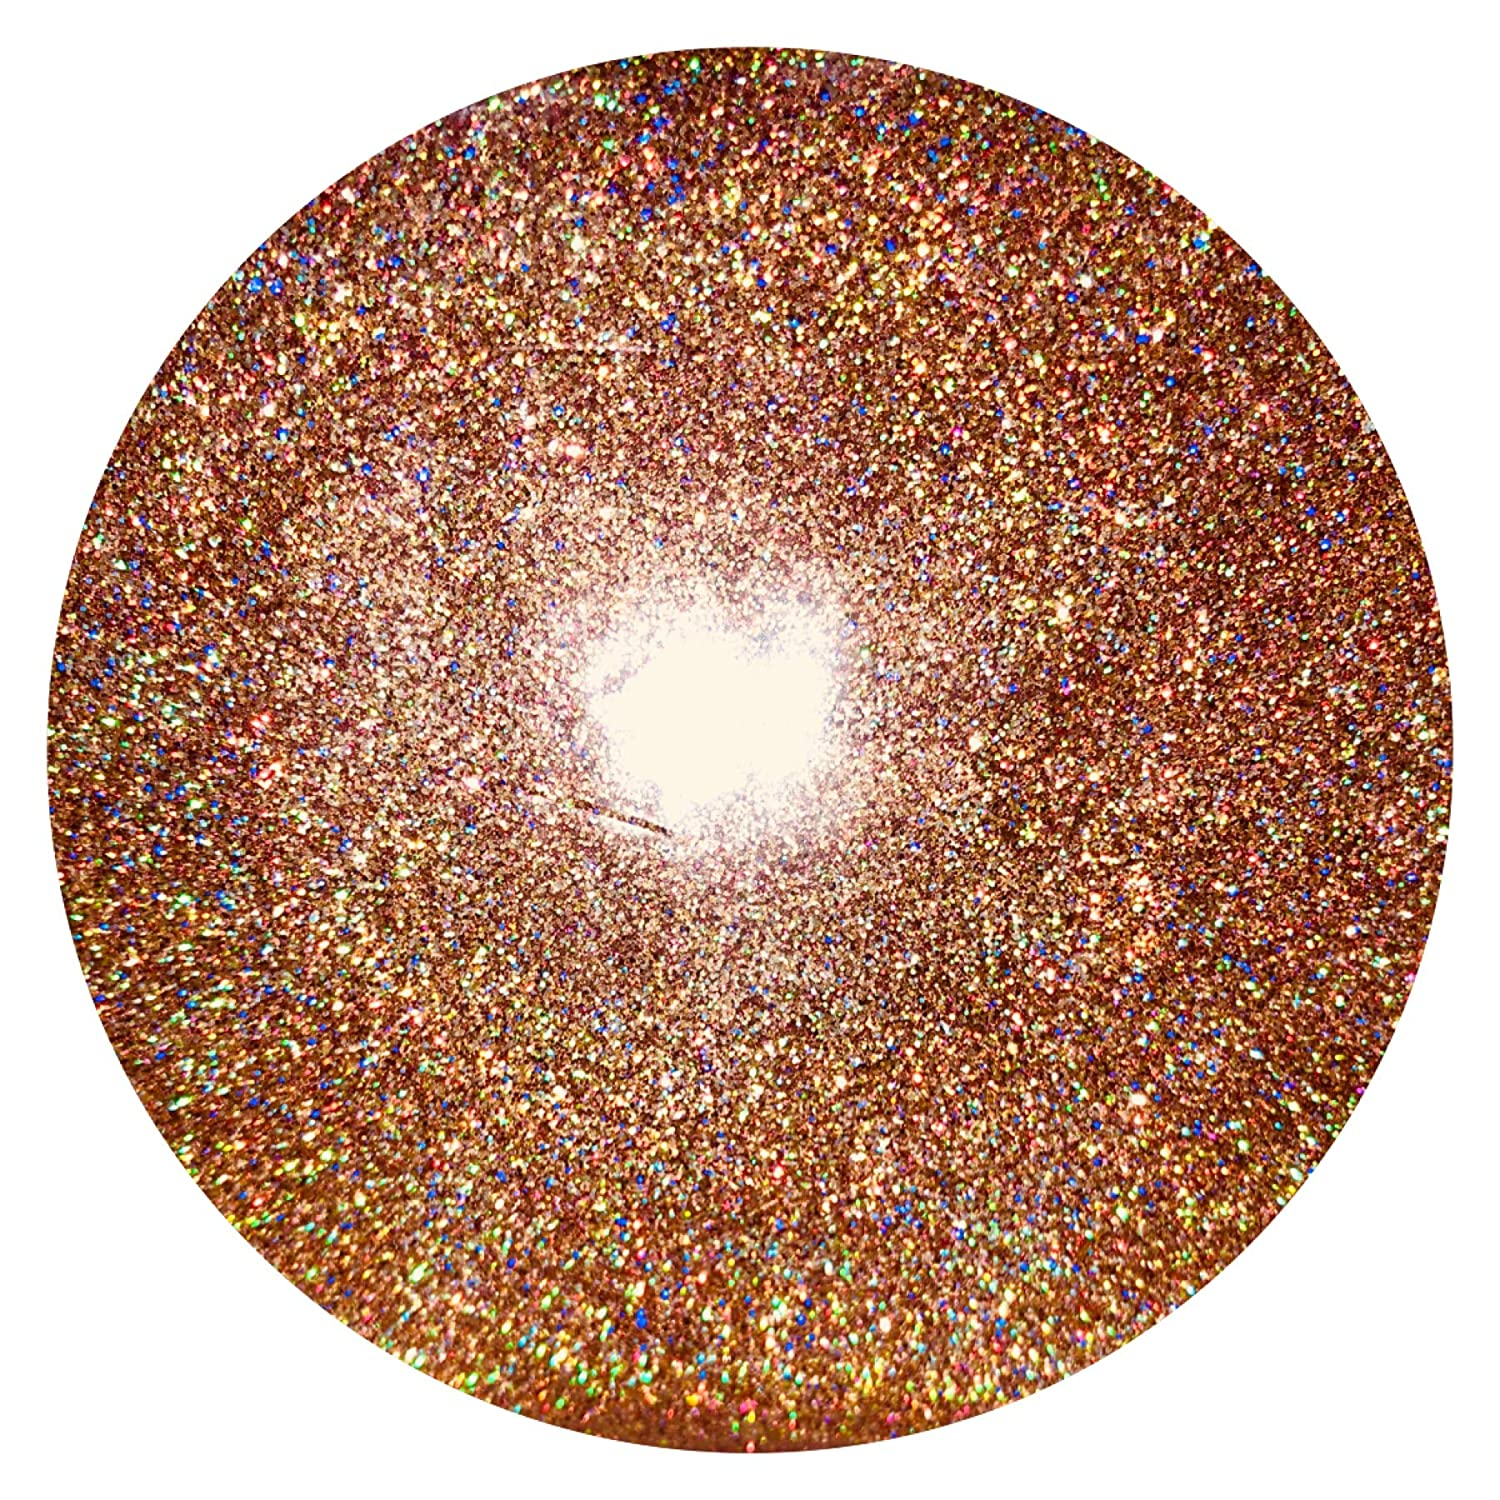 Just Crystals Boutique ROSE GOLD HOLOGRAPHIC GLITTER ULTRA FINE WINE GLASS ART AND CRAFT NAIL ART SCRAP BOOKING NON TOXIC 100g bag